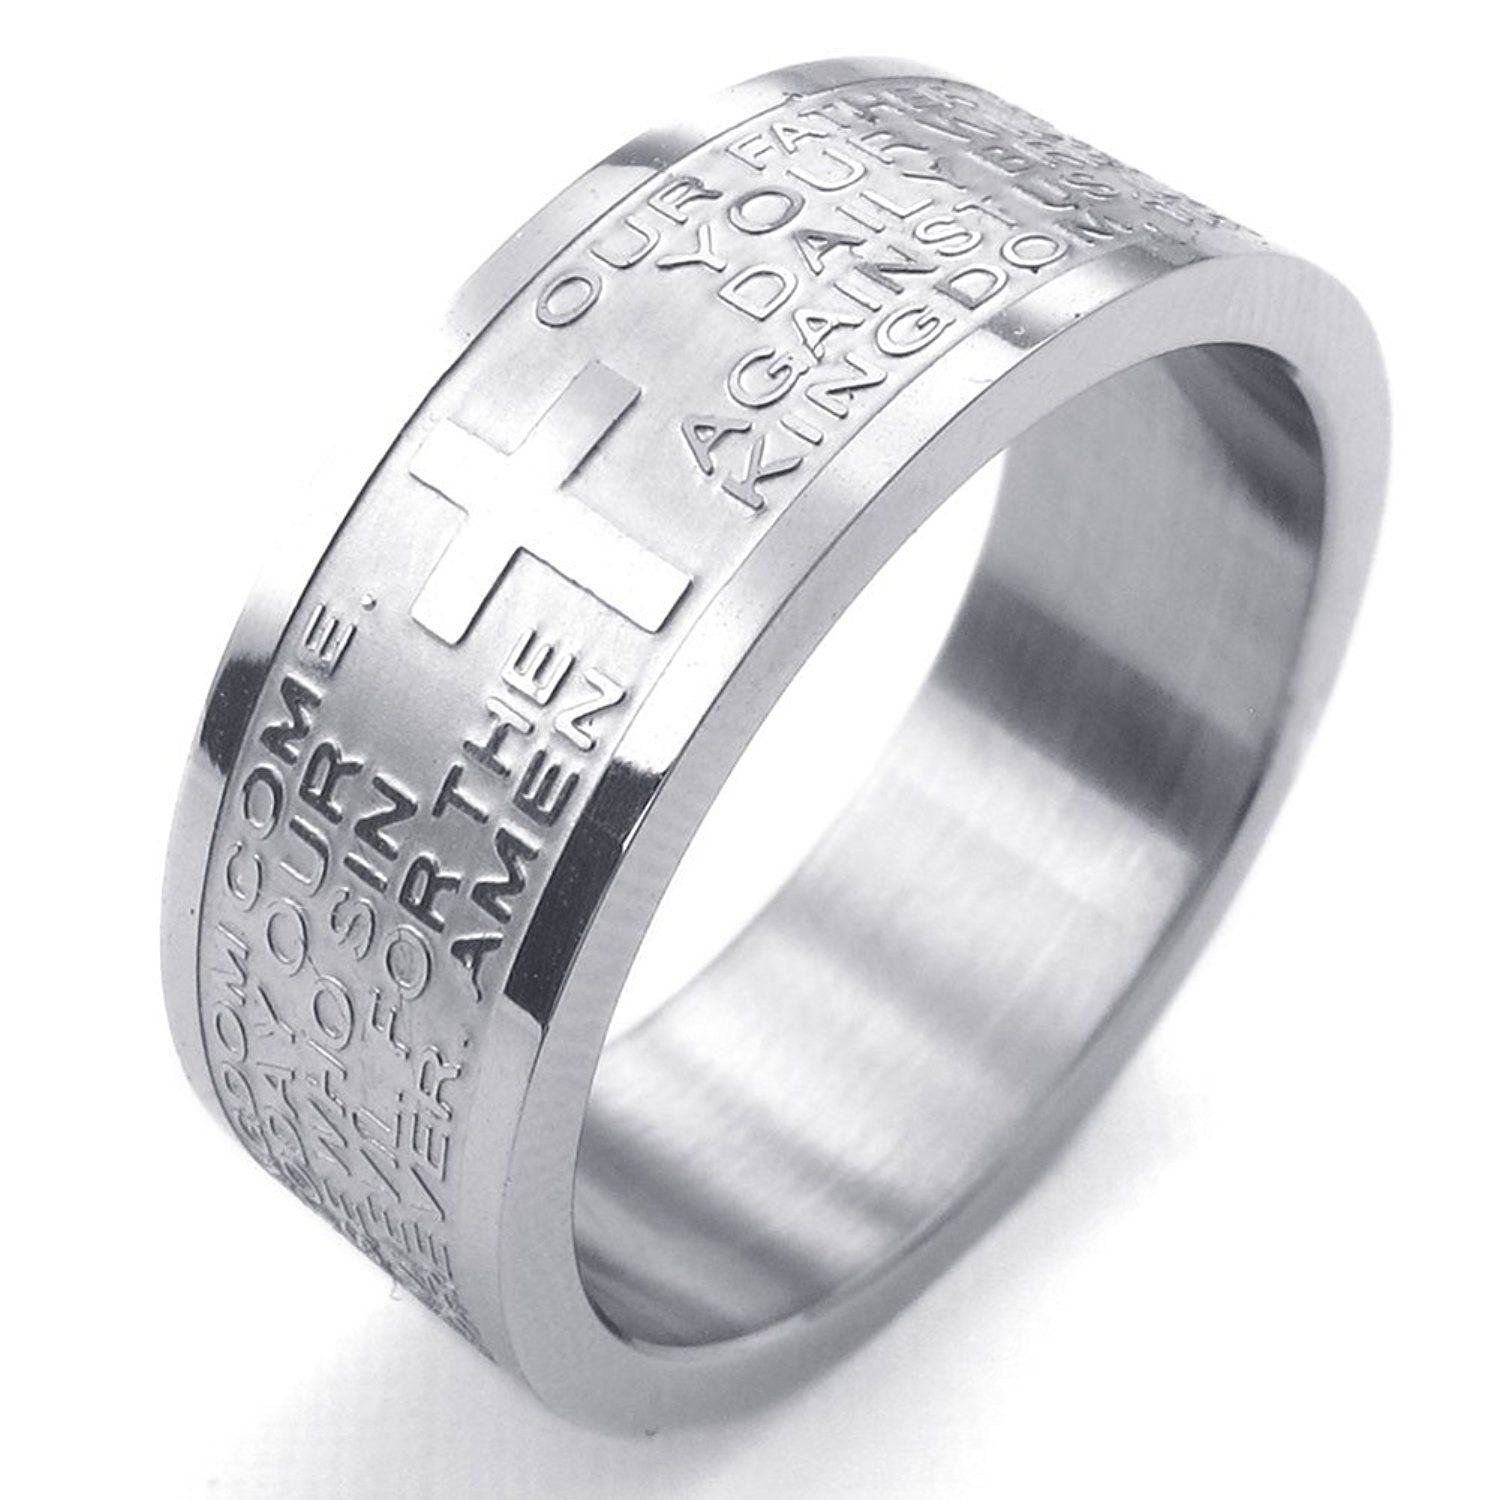 Pin by 1 Cent Penny Products on Men's Jewelry Stainless